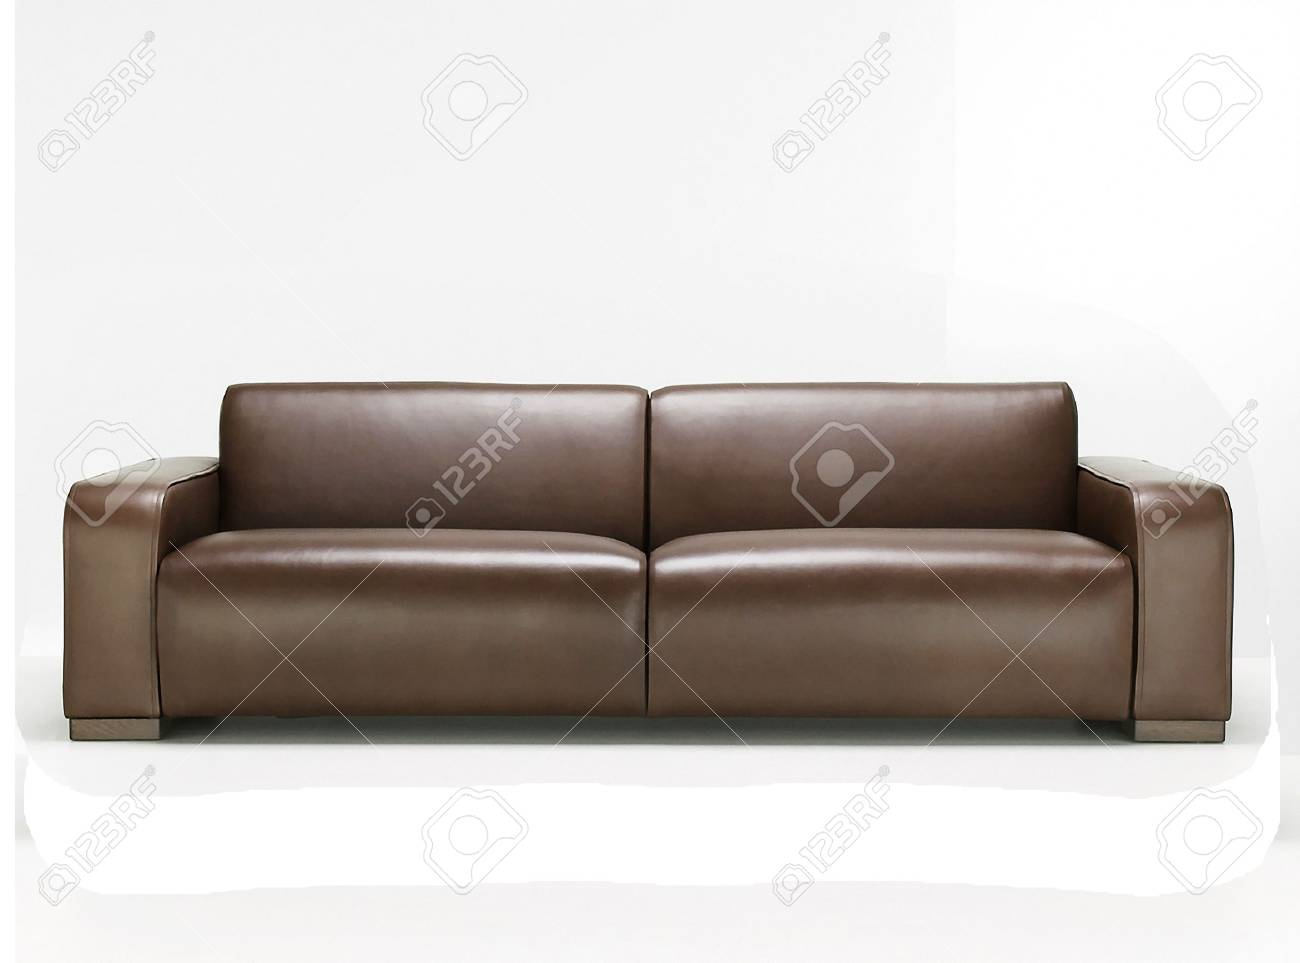 - Elegant Brown Leather Sofa Stock Photo, Picture And Royalty Free